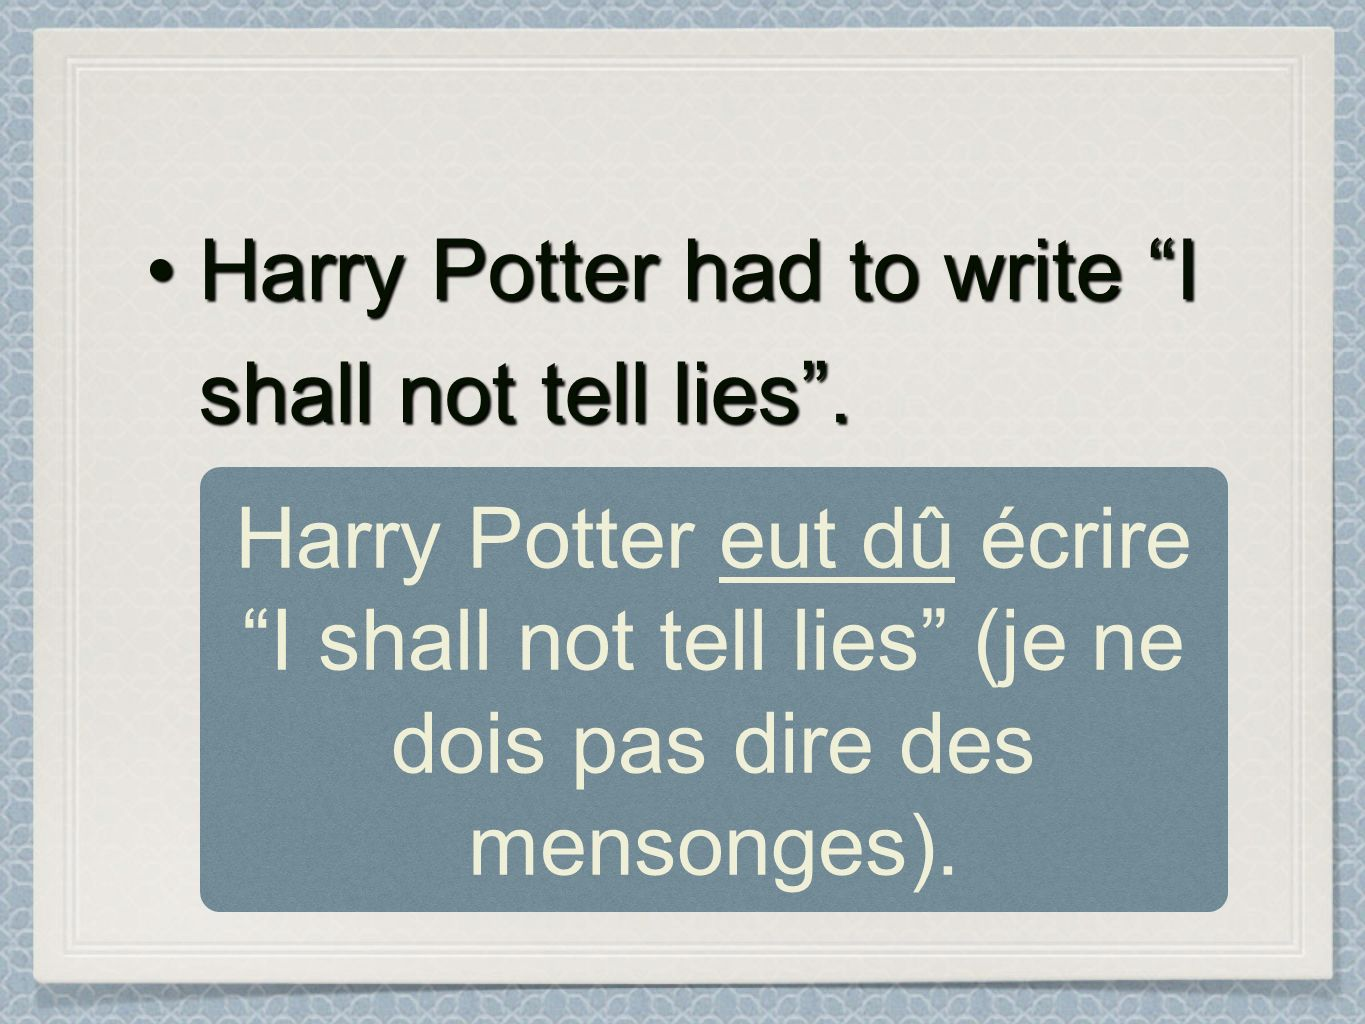 Harry Potter had to write I shall not tell lies.Harry Potter had to write I shall not tell lies. Harry Potter eut dû écrire I shall not tell lies (je